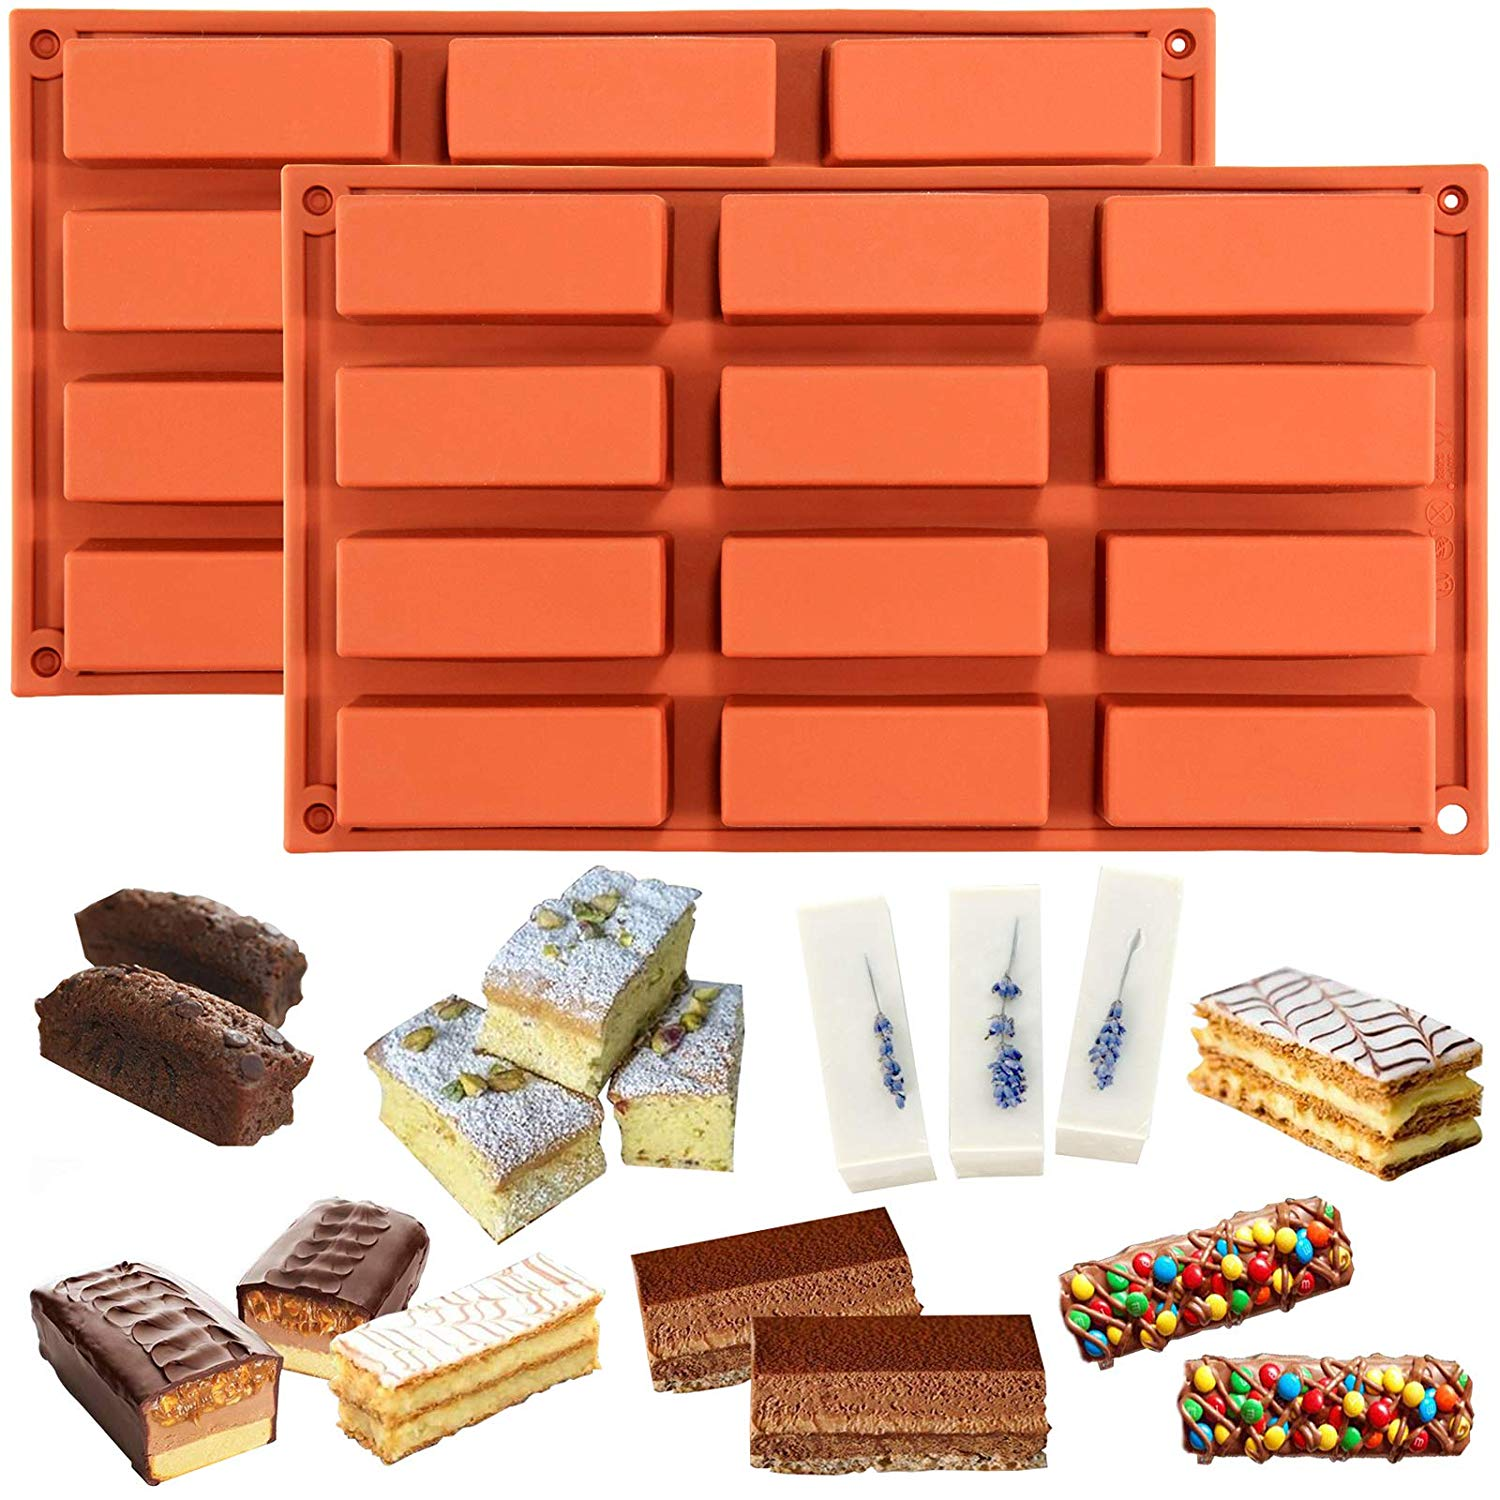 Narrow Rectangle Bars Silicone Mold 12-cavity 2-Bundle